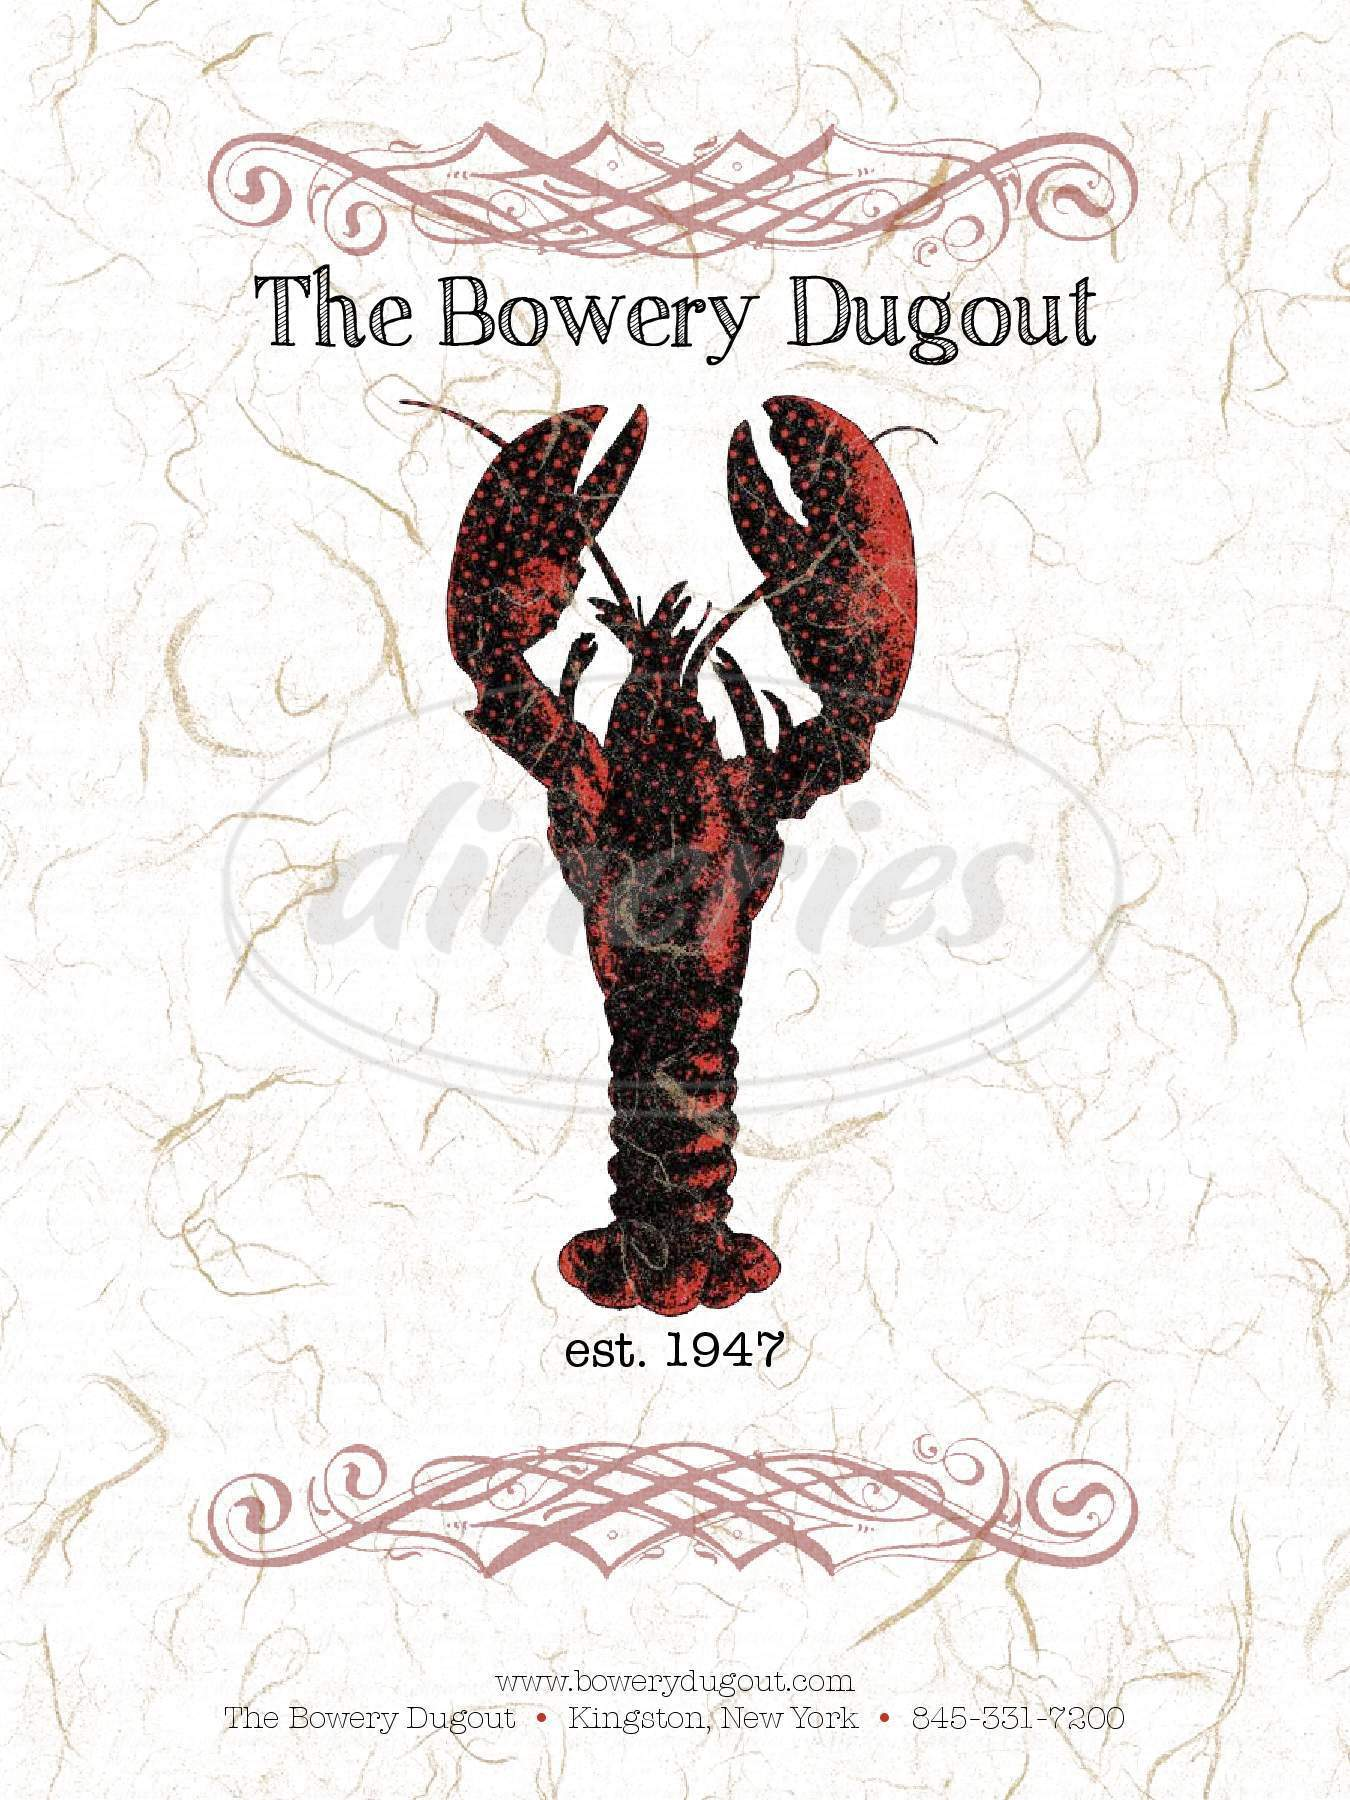 menu for Bowery Dugout the